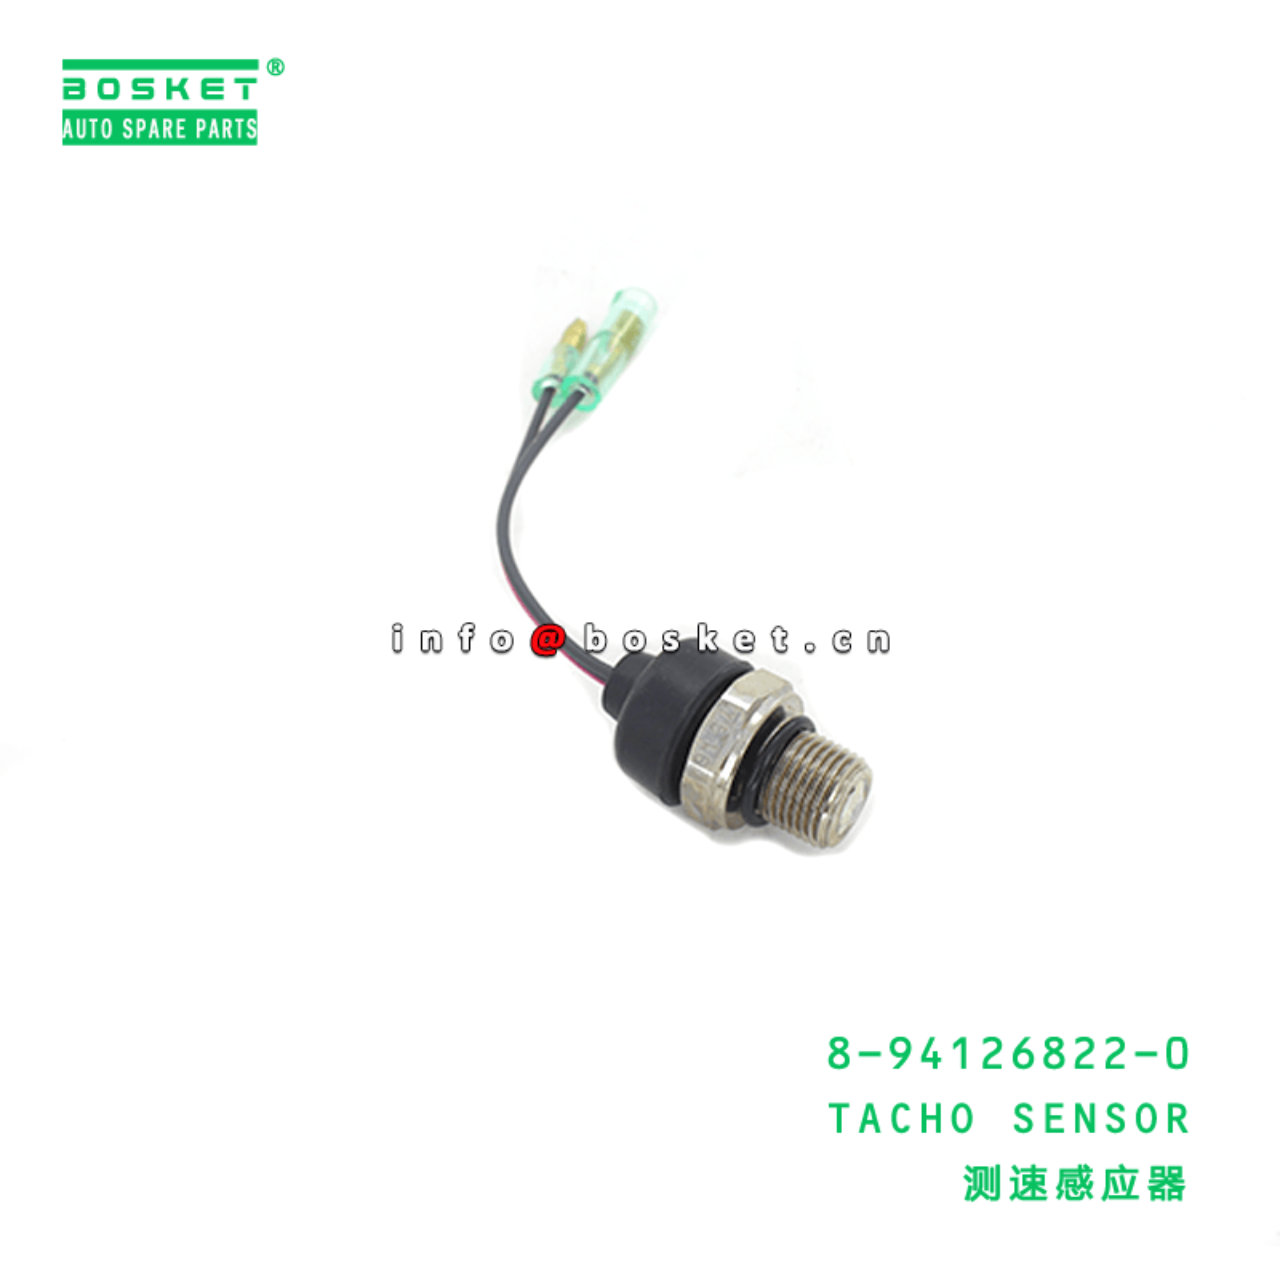 8-94126822-0 Tacho Sensor 8941268220 Suitable for ISUZU 4JB1